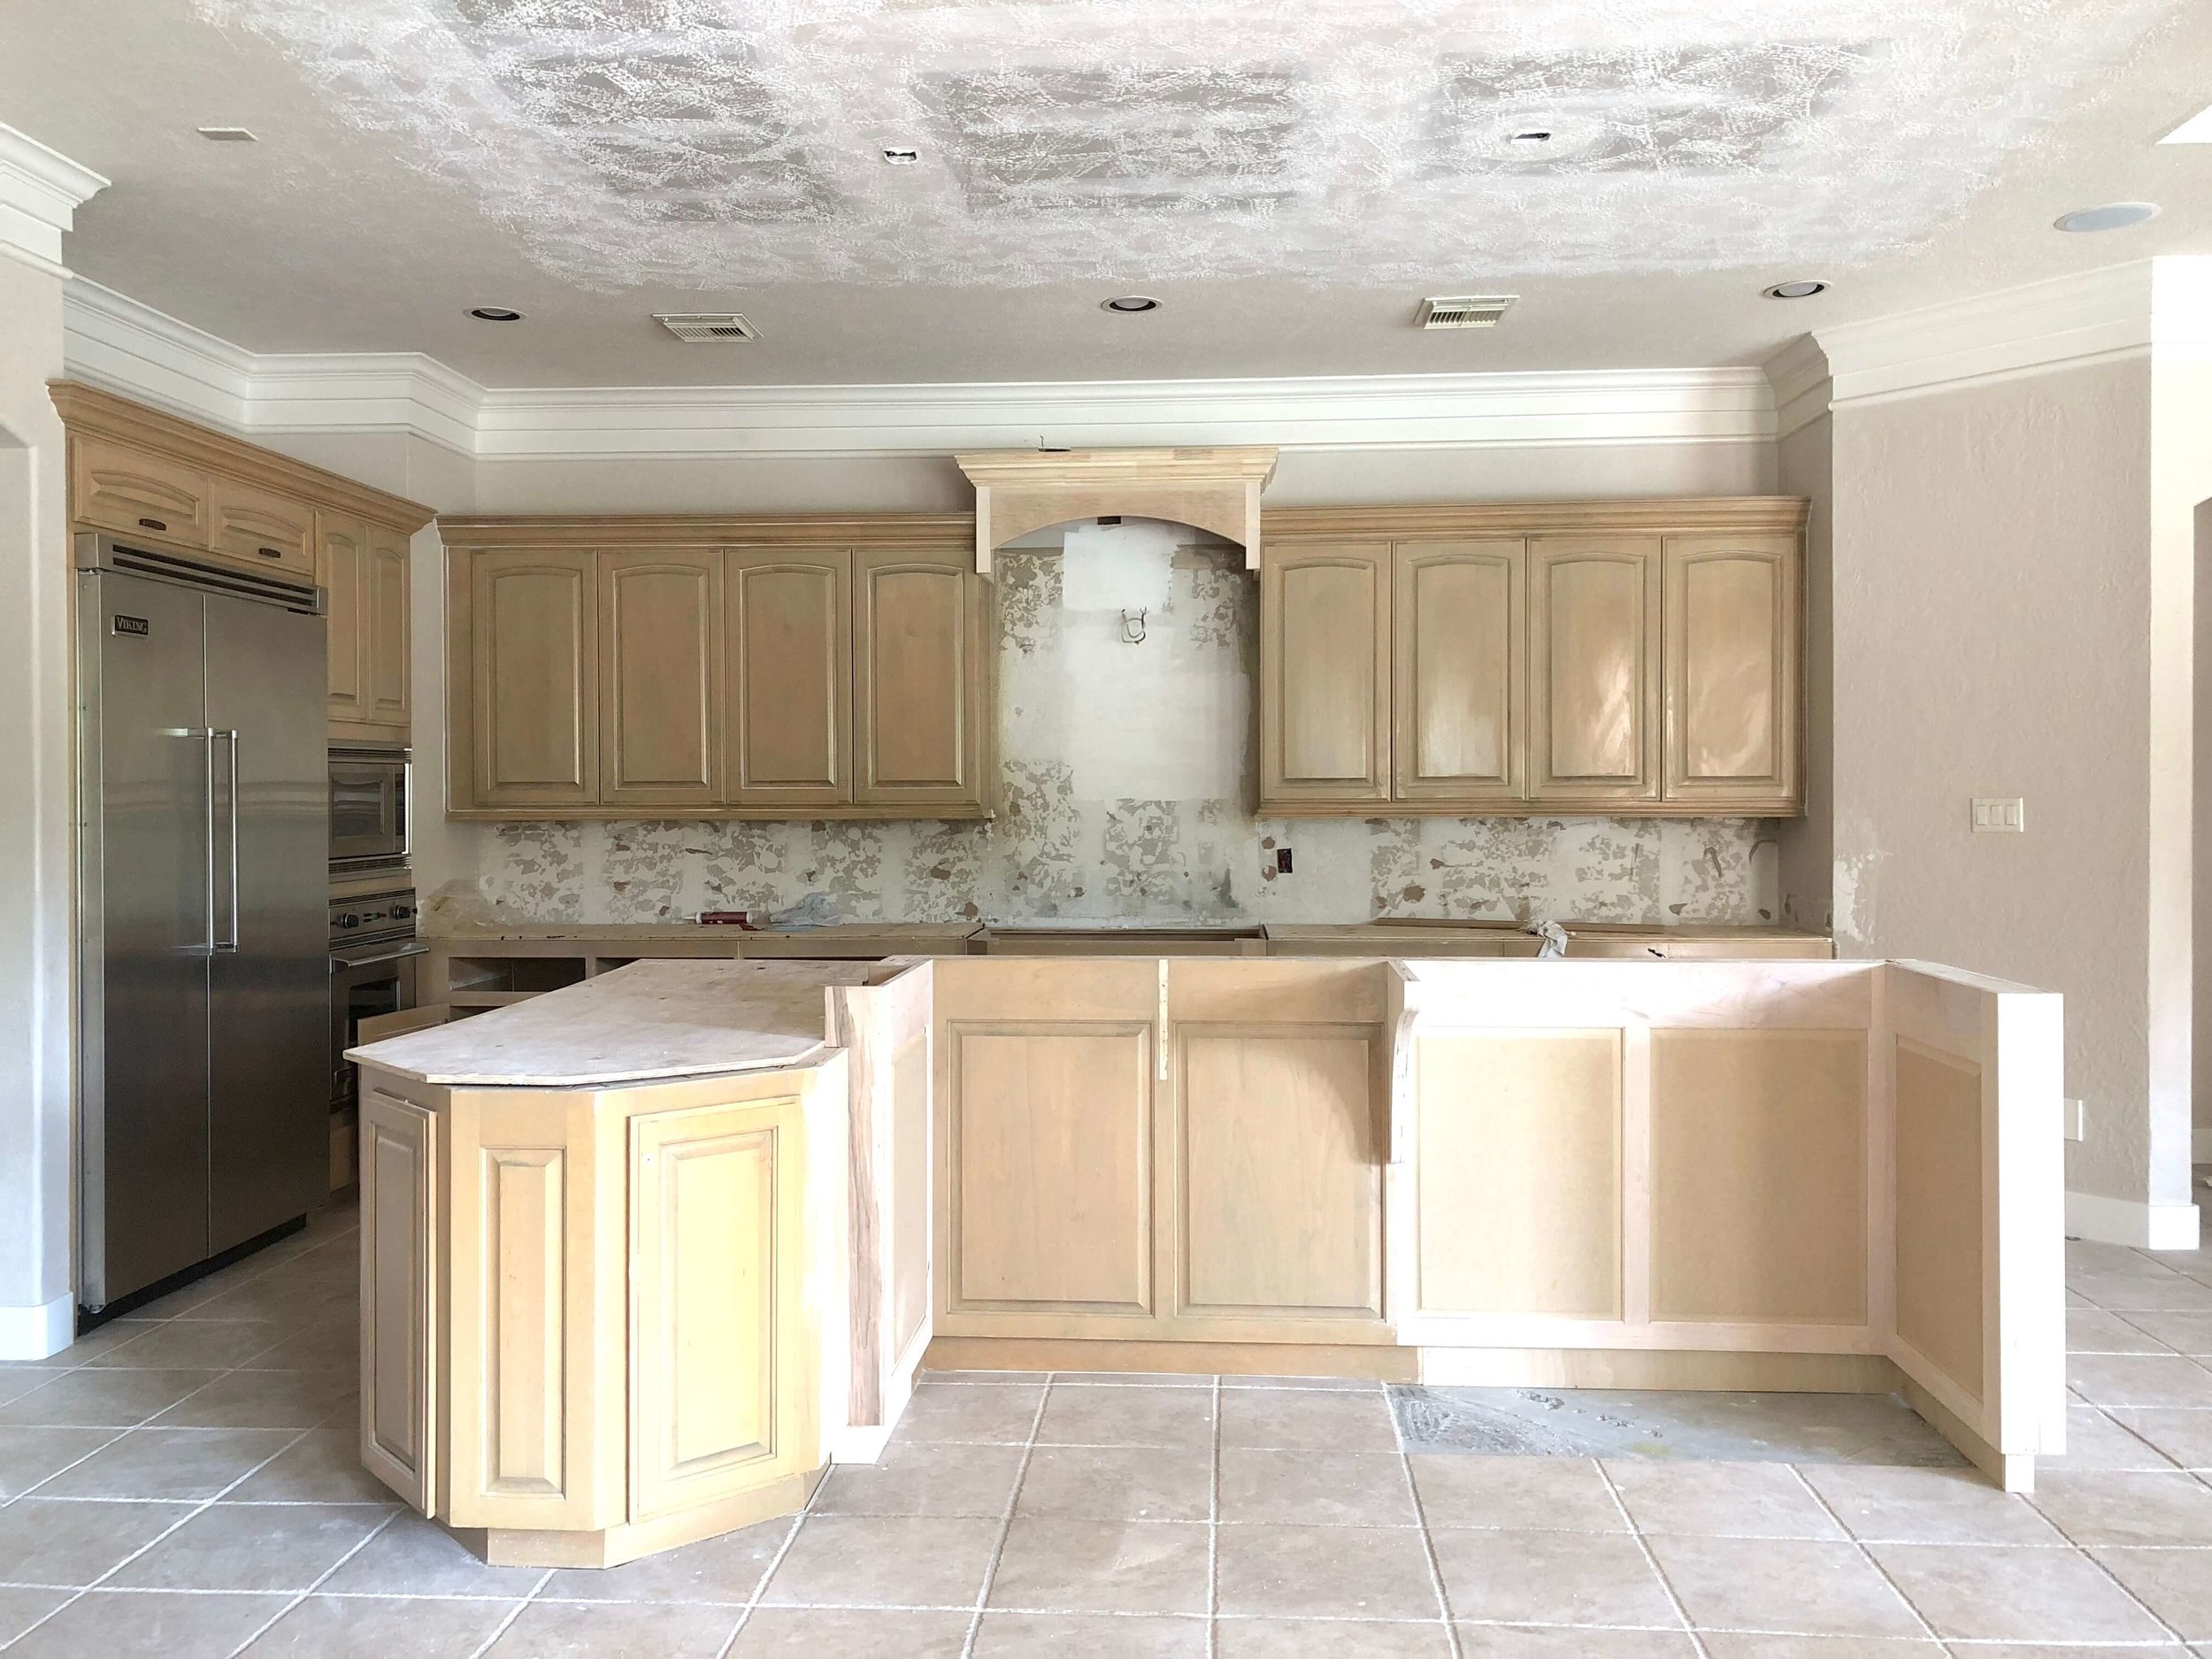 REMODEL IN PROGRESS - cabinetry modifications and furr down over island removed | Carla Aston, Designer #kitchenremodel